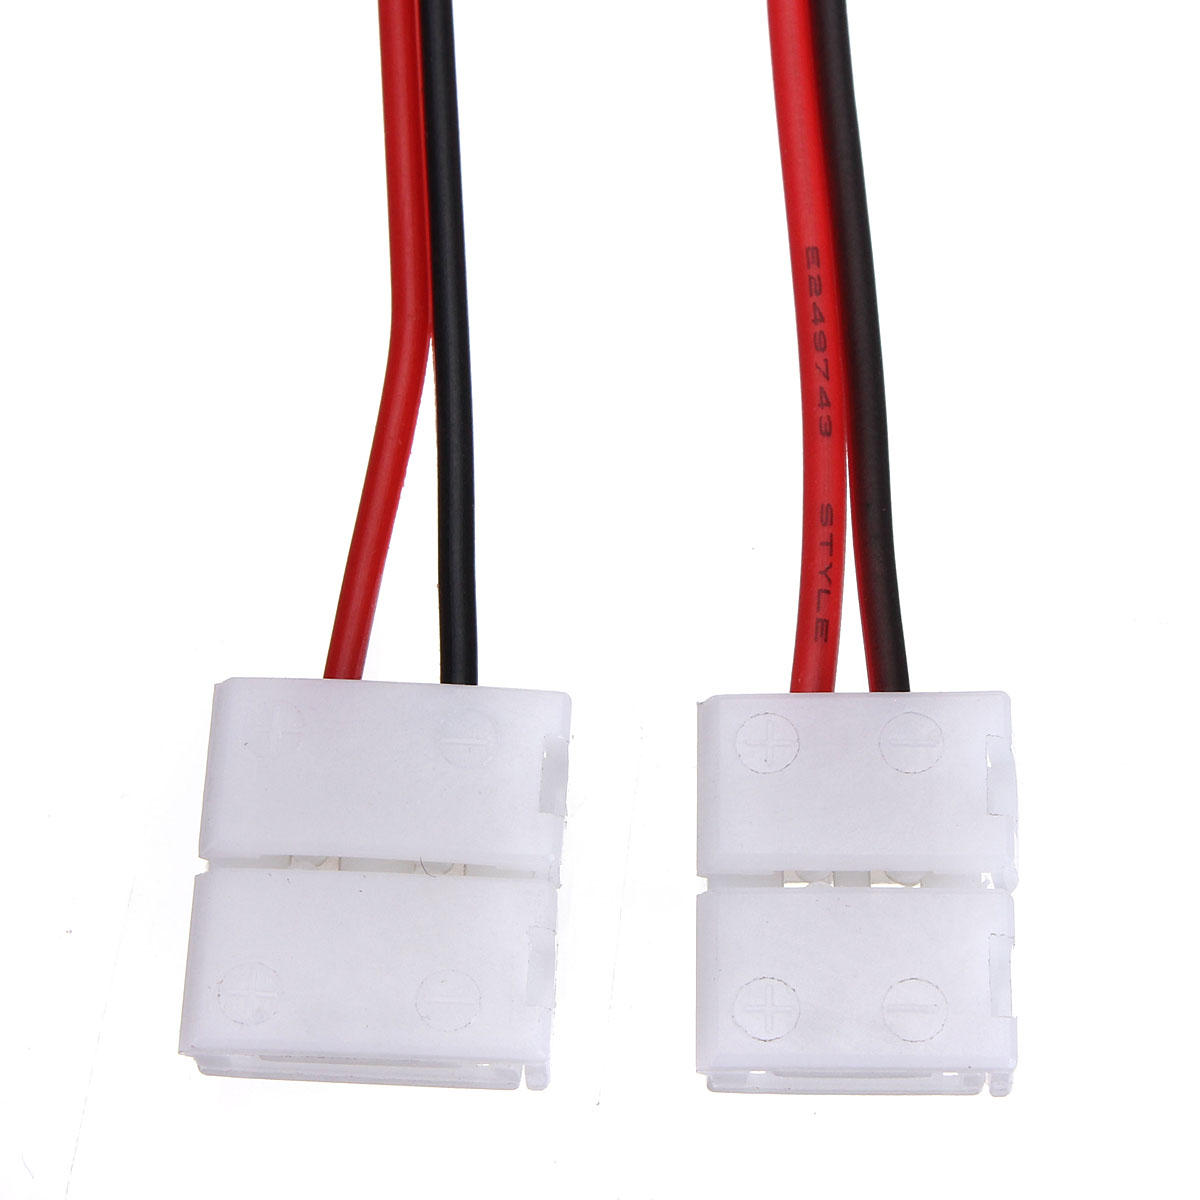 2-Pins Power Connector Adaptor For 3528/5050